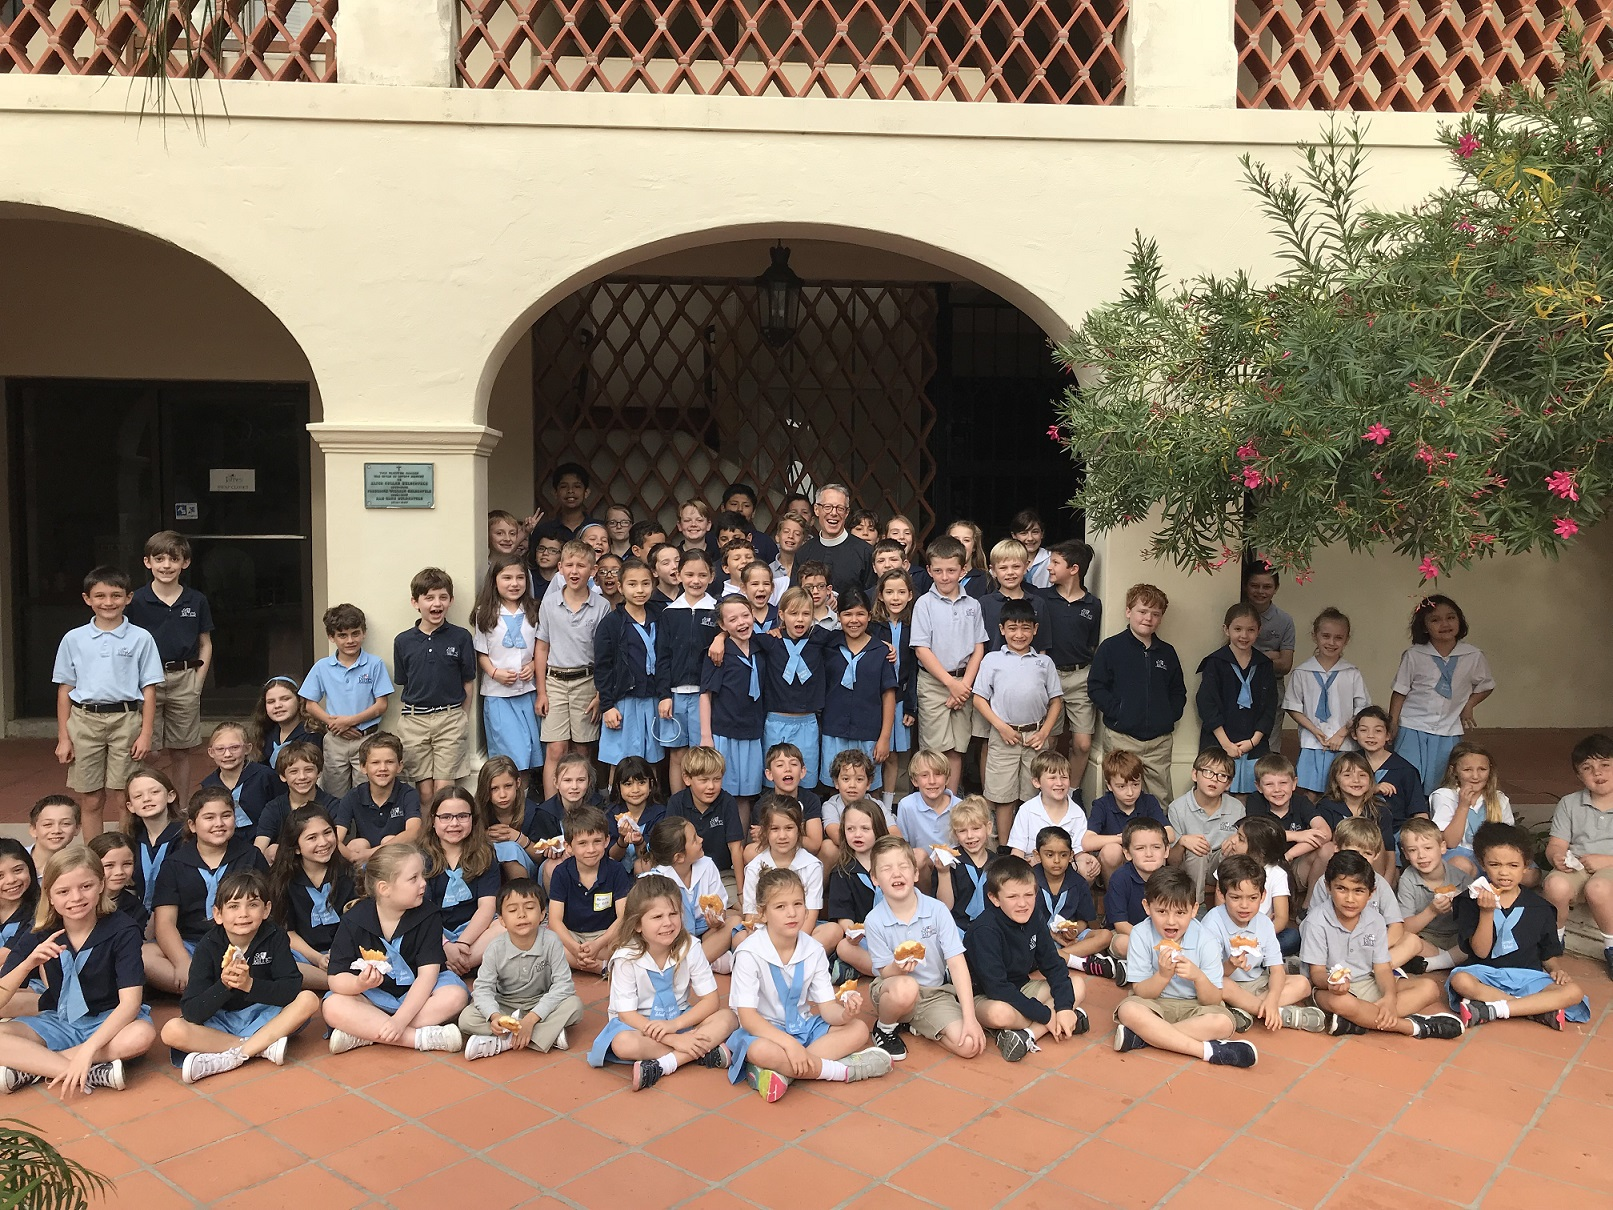 Lower School group photo in courtyard